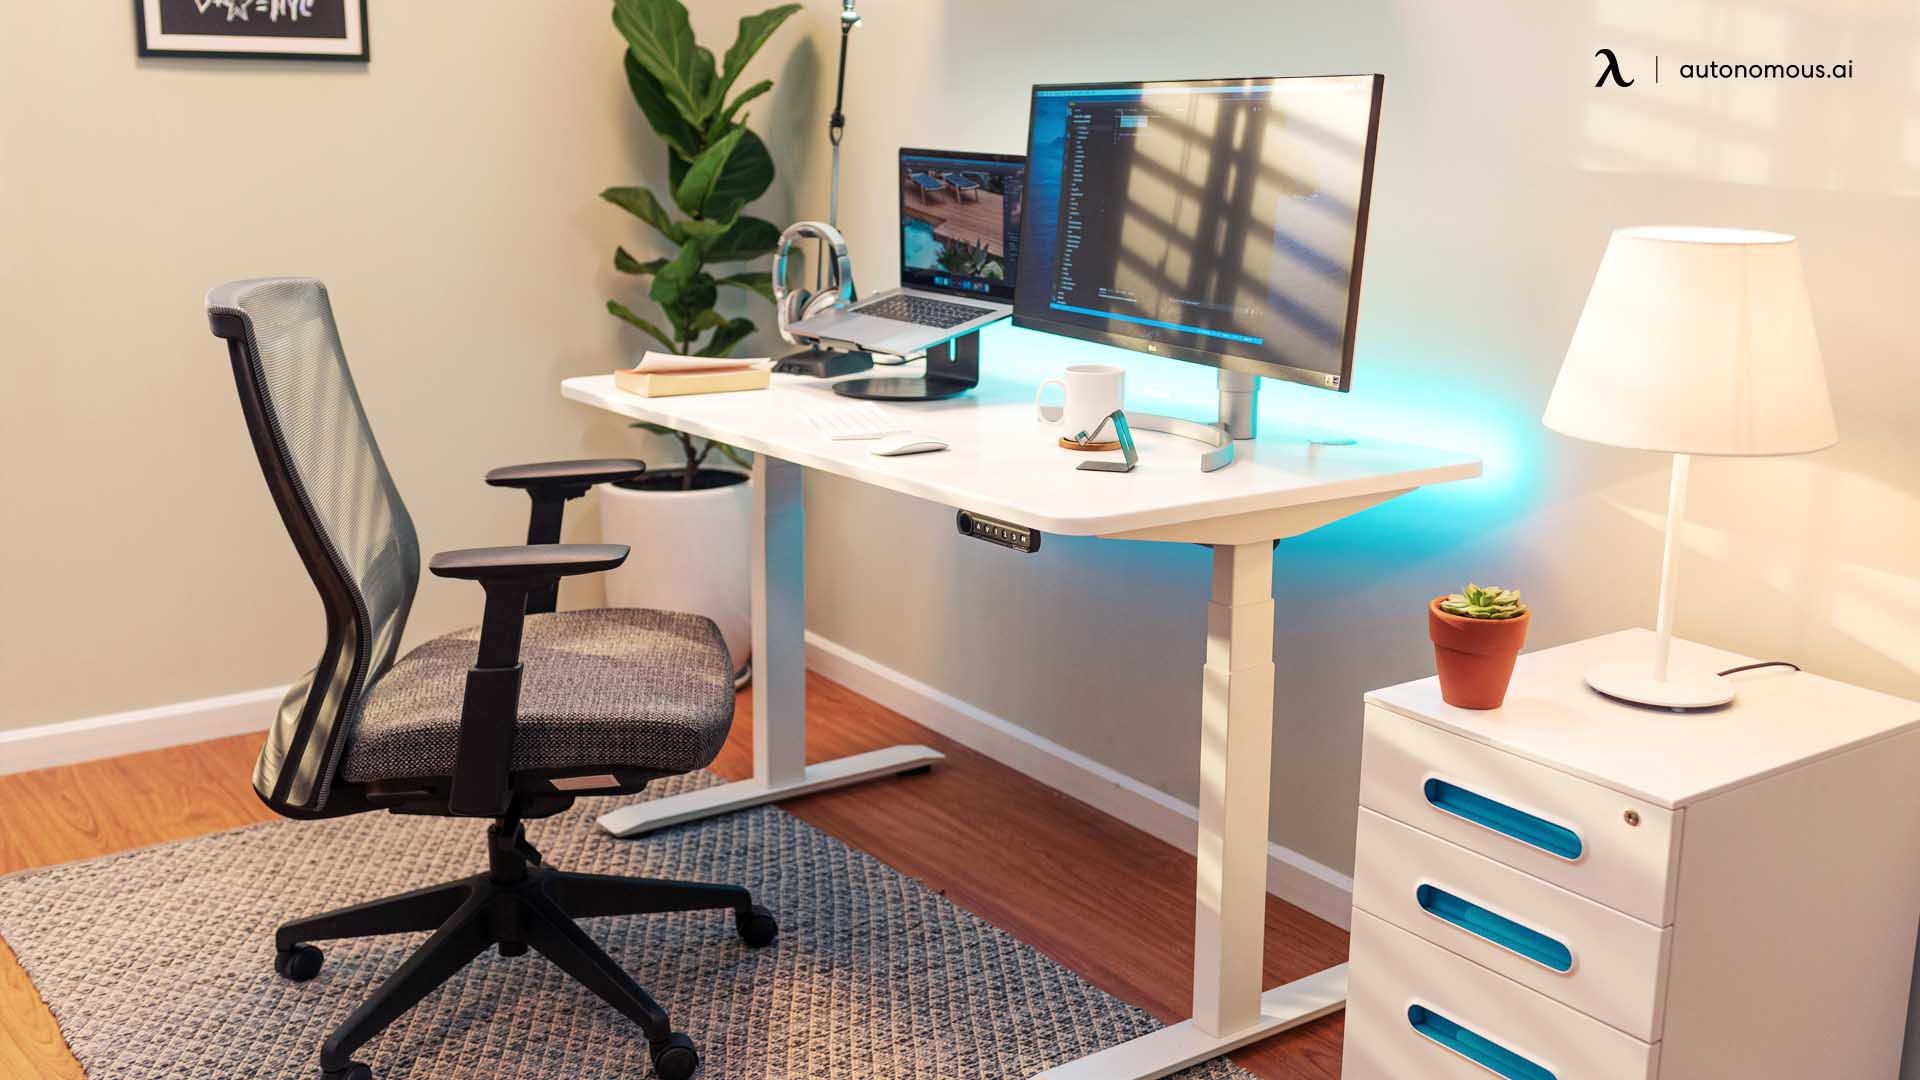 The SmartDesk 4 is one of Autonomous' newest inclusions